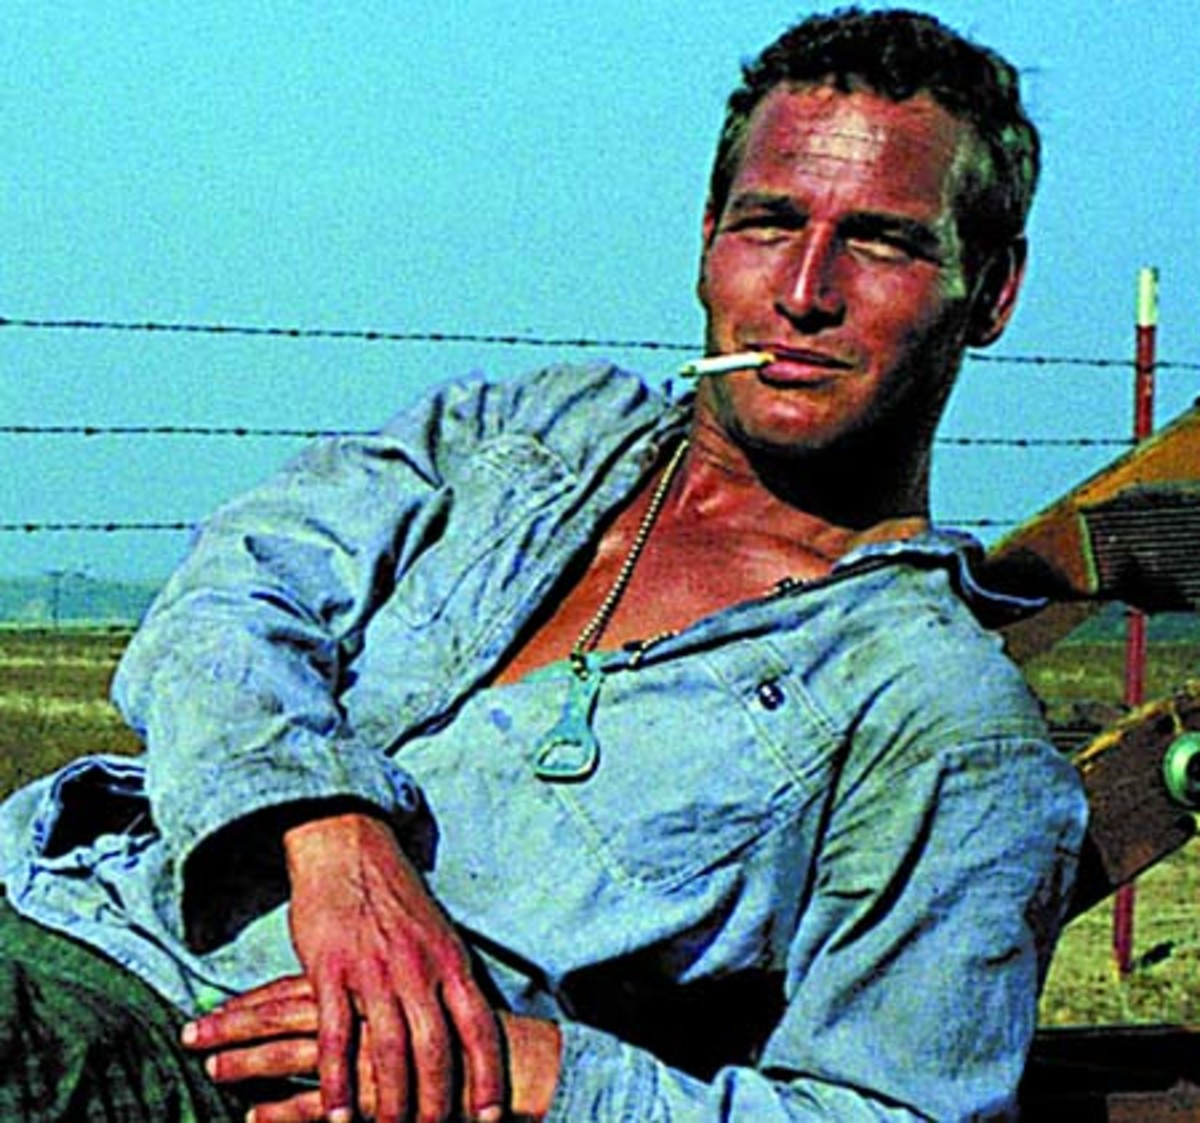 Paul Newman as the ever-smiling Luke